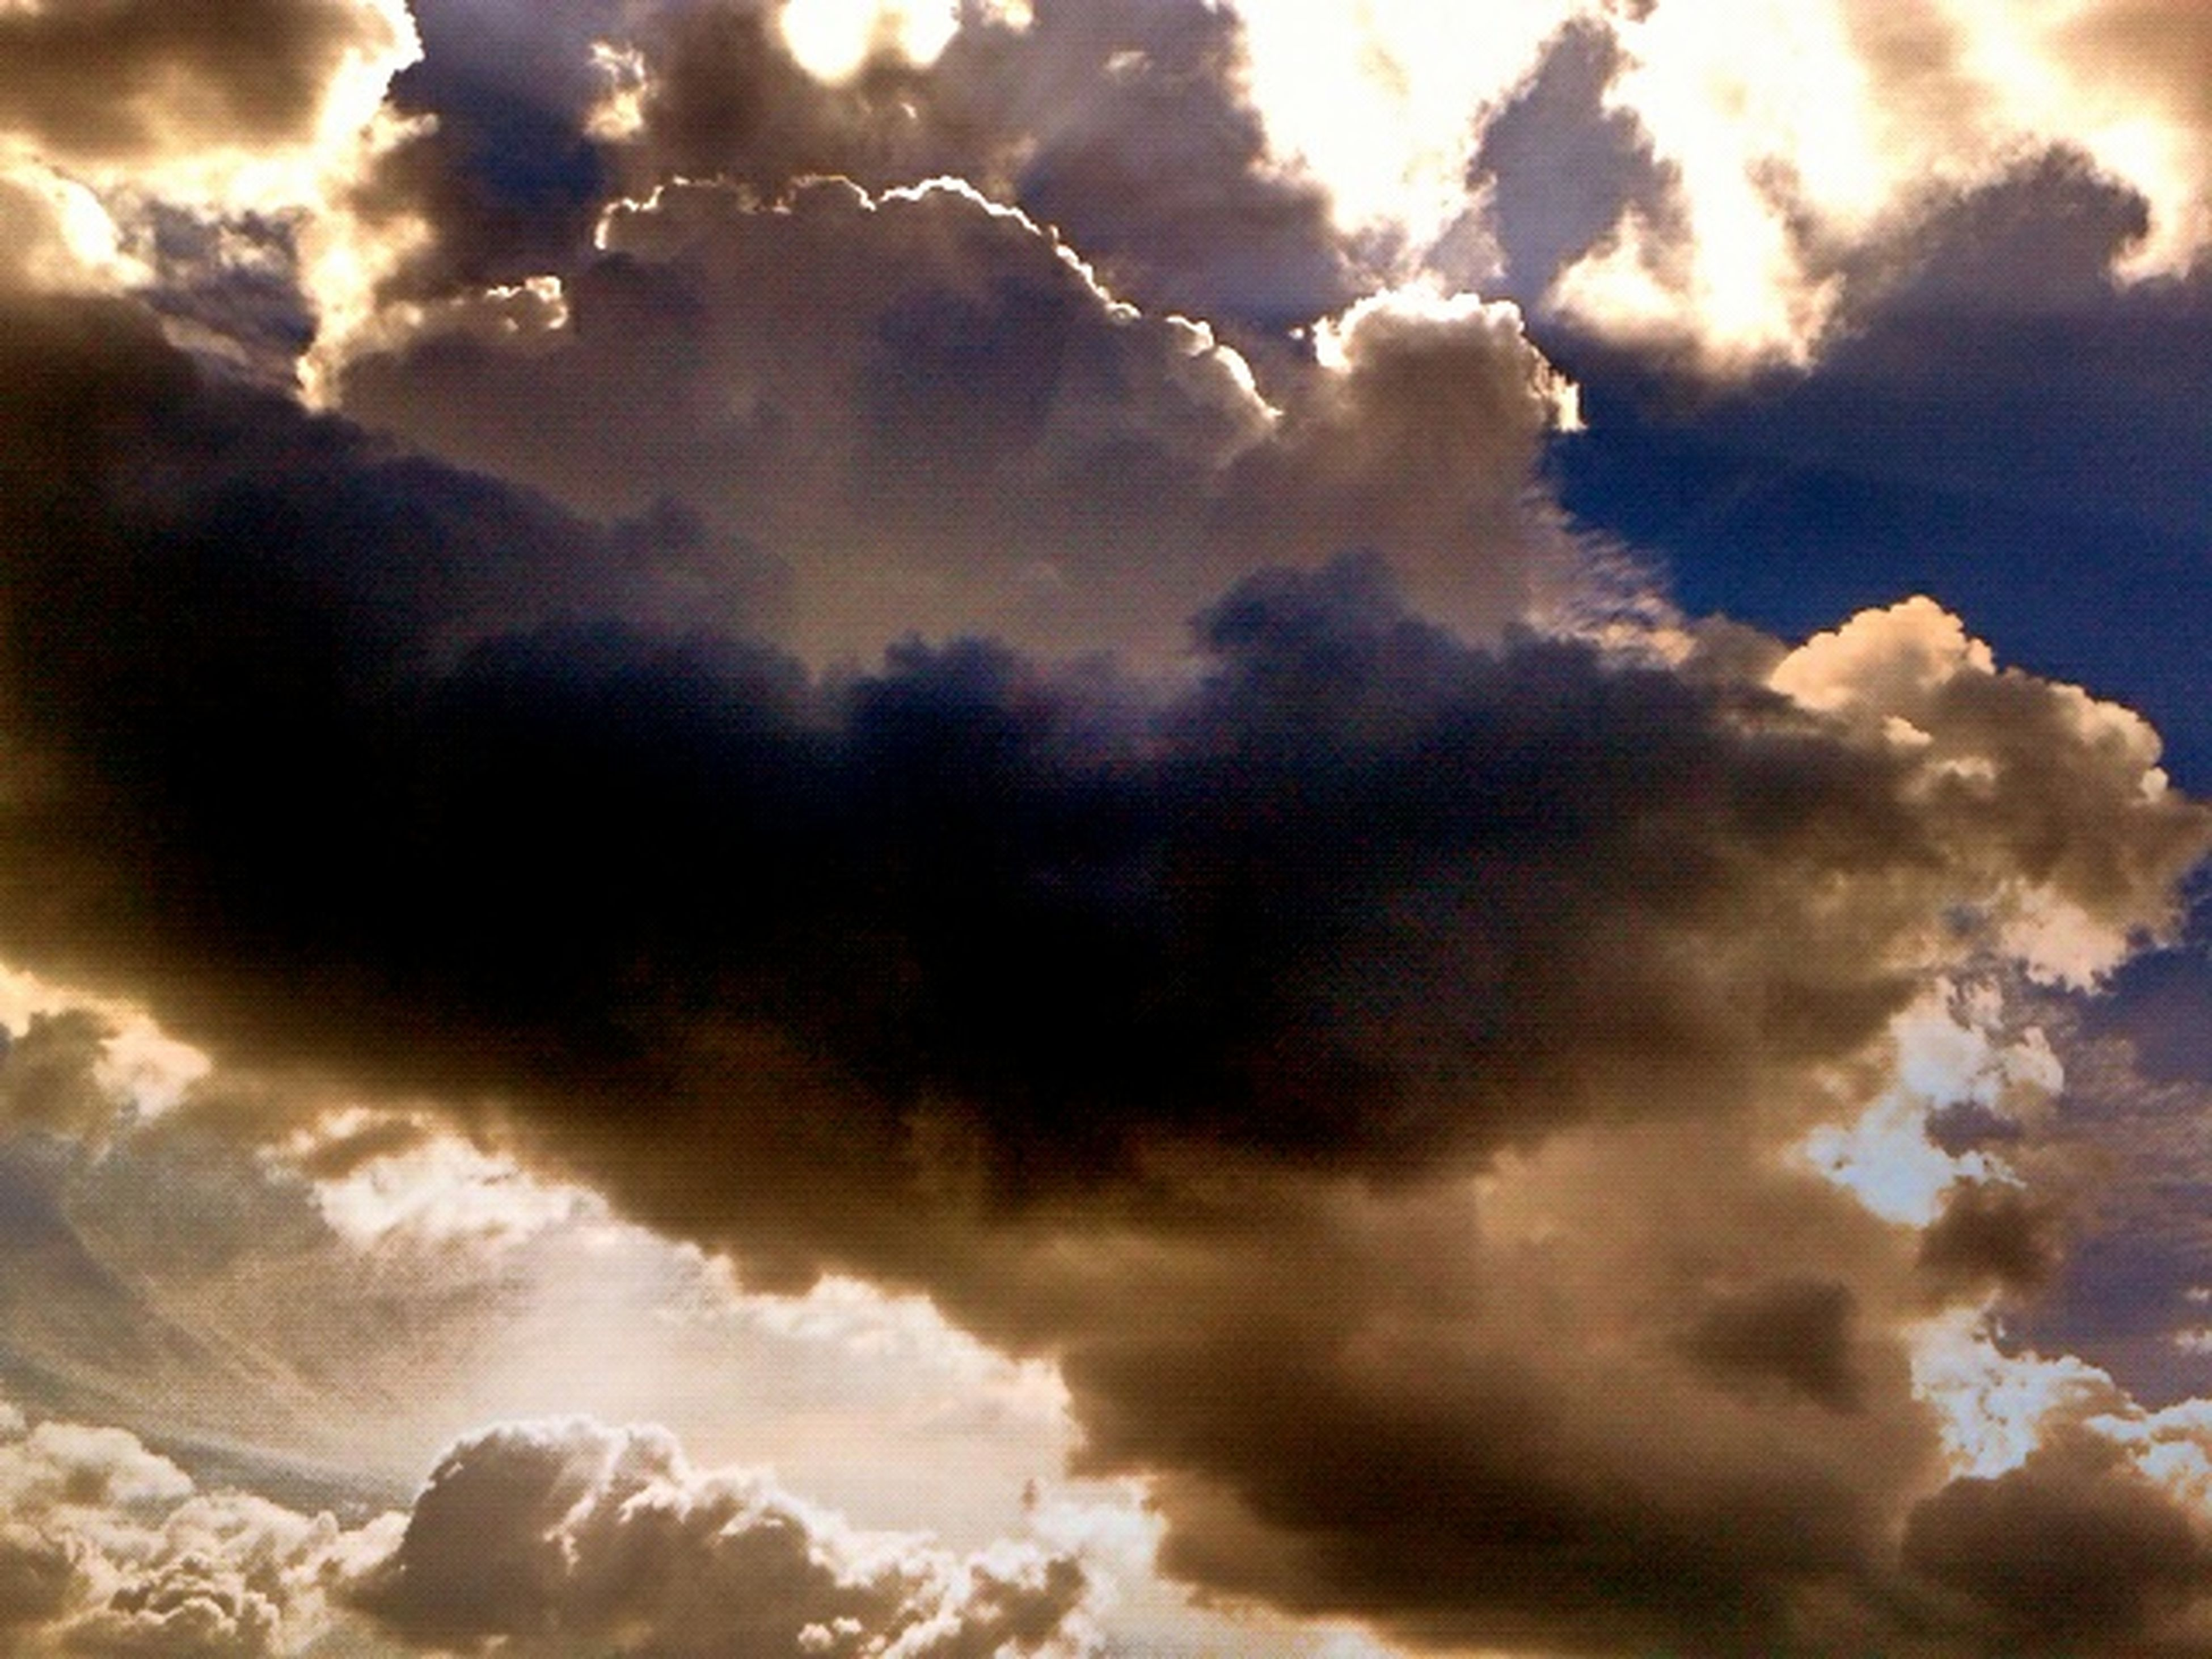 cloud - sky, sky, cloudy, low angle view, cloudscape, sky only, beauty in nature, scenics, tranquility, weather, tranquil scene, nature, cloud, dramatic sky, overcast, idyllic, backgrounds, sunset, majestic, full frame